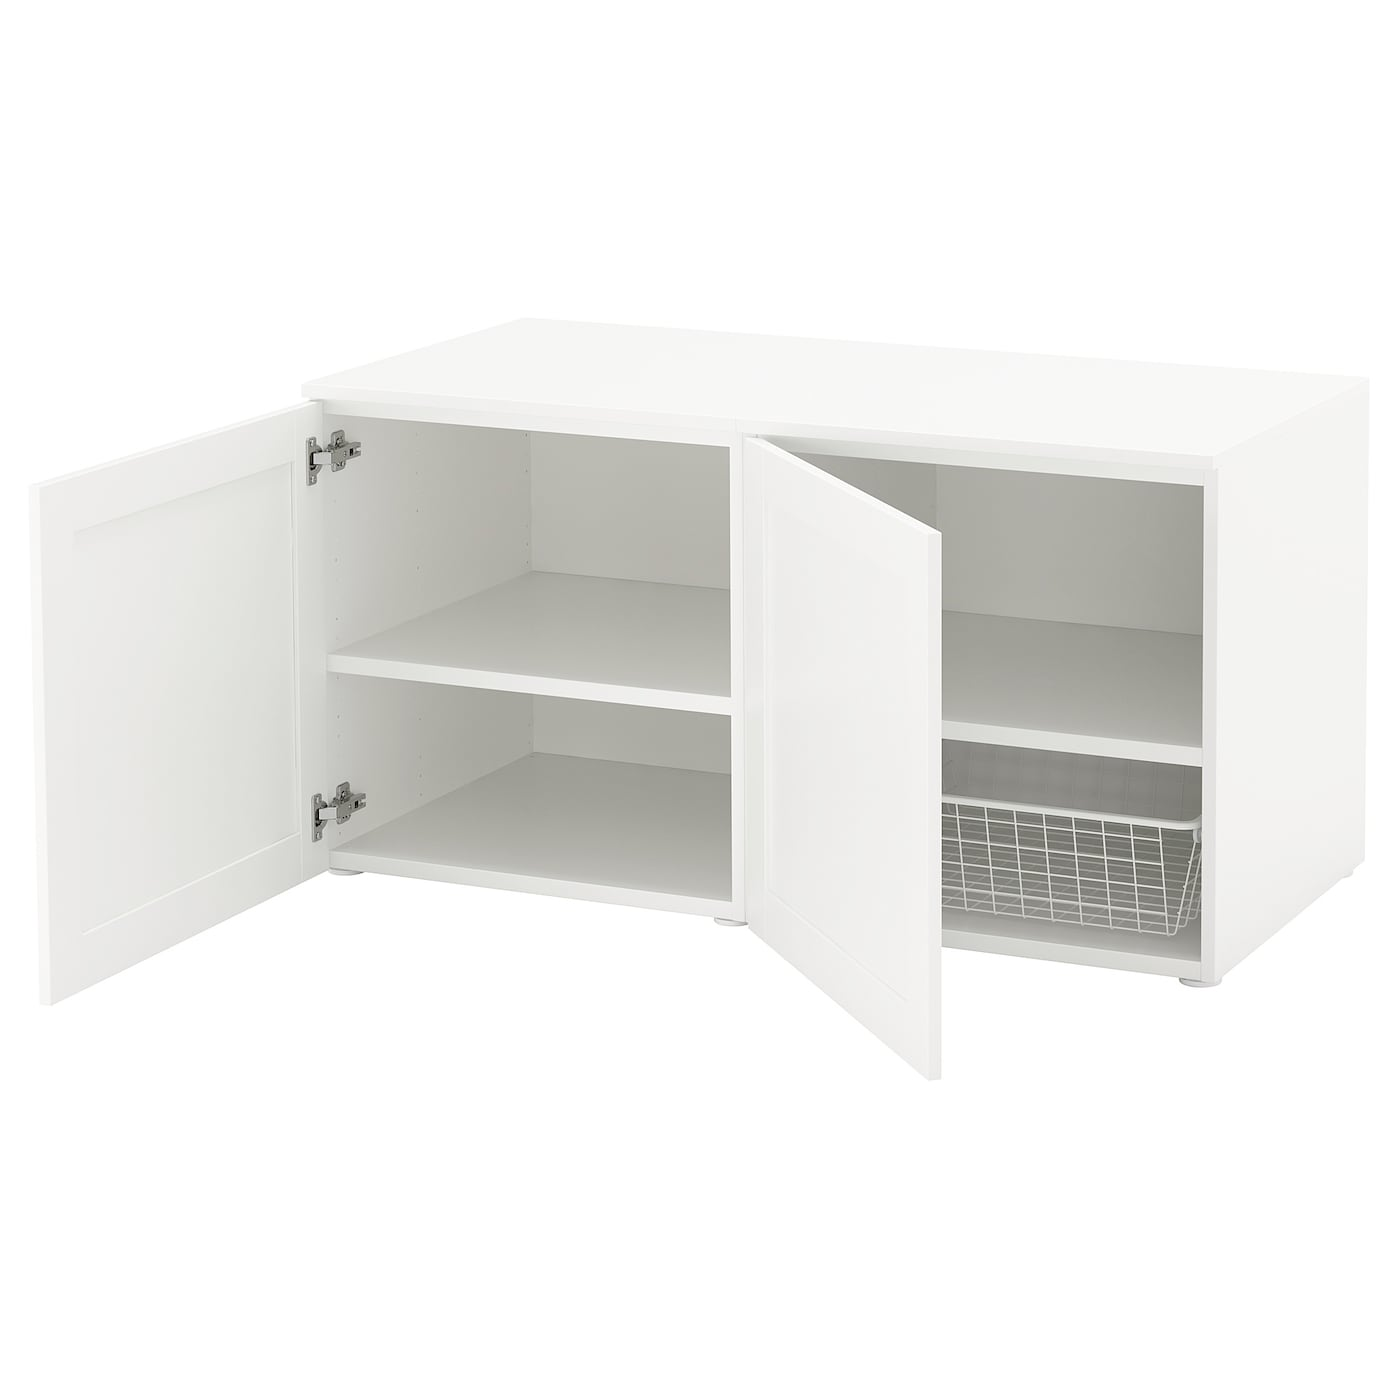 platsa storage bench white sannidal white 120 x 57 x 63 cm ikea. Black Bedroom Furniture Sets. Home Design Ideas